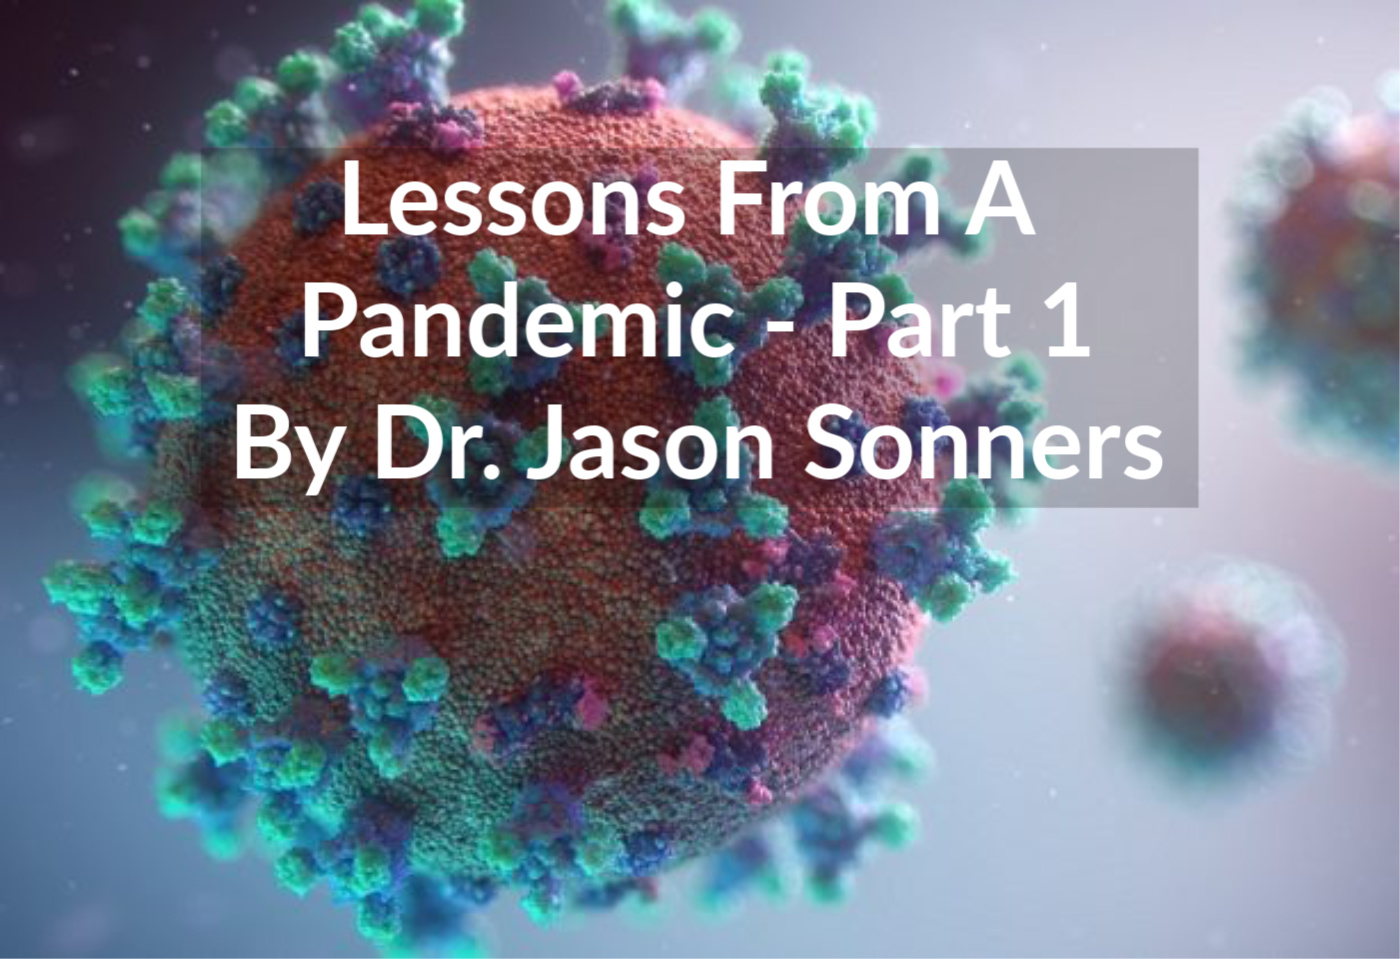 Lessons From A Pandemic - Part 1 By Dr. Jason Sonners